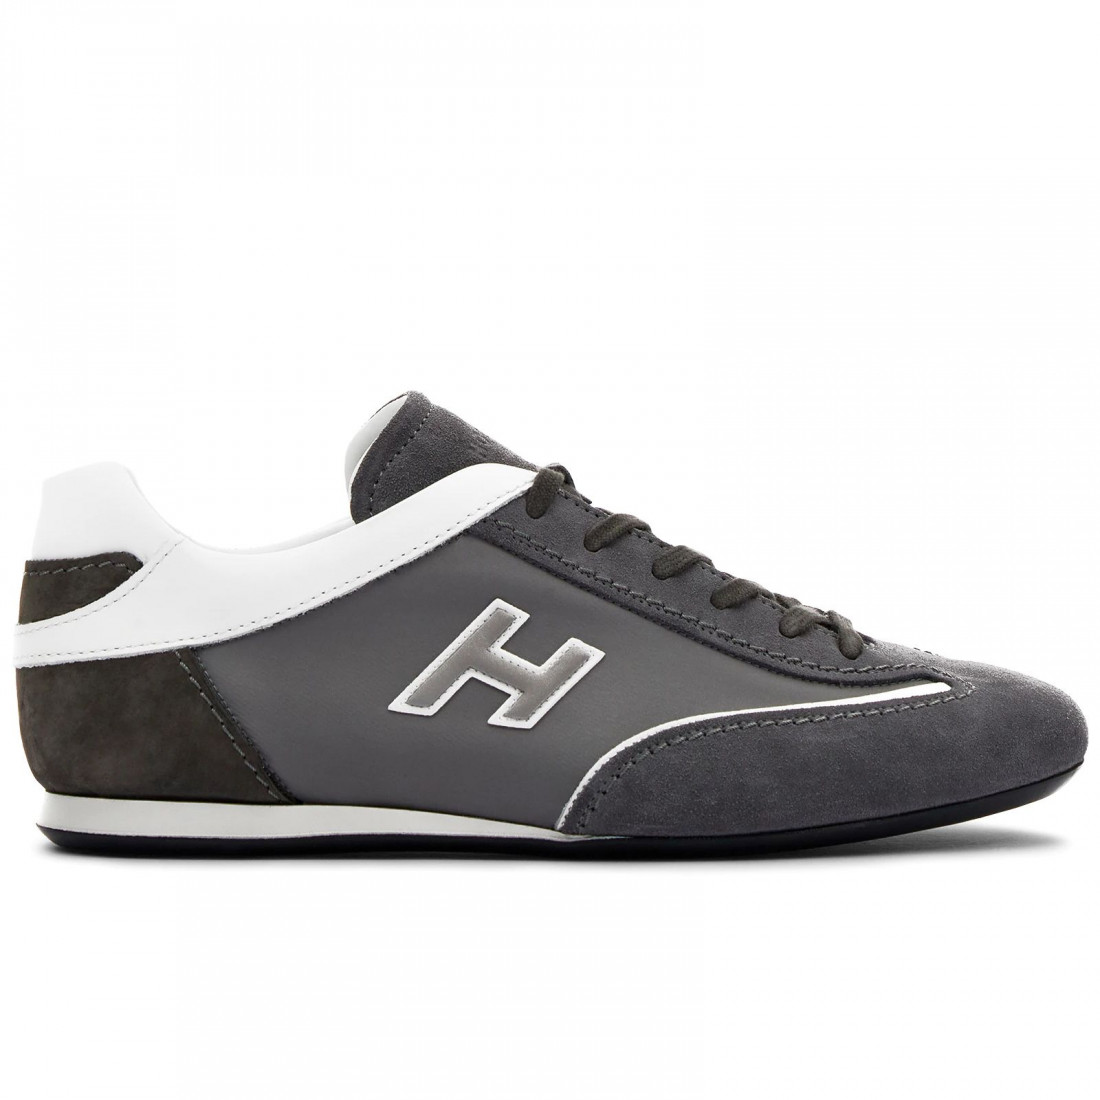 Hogan Olympia men's sneaker in grey suede and fabric